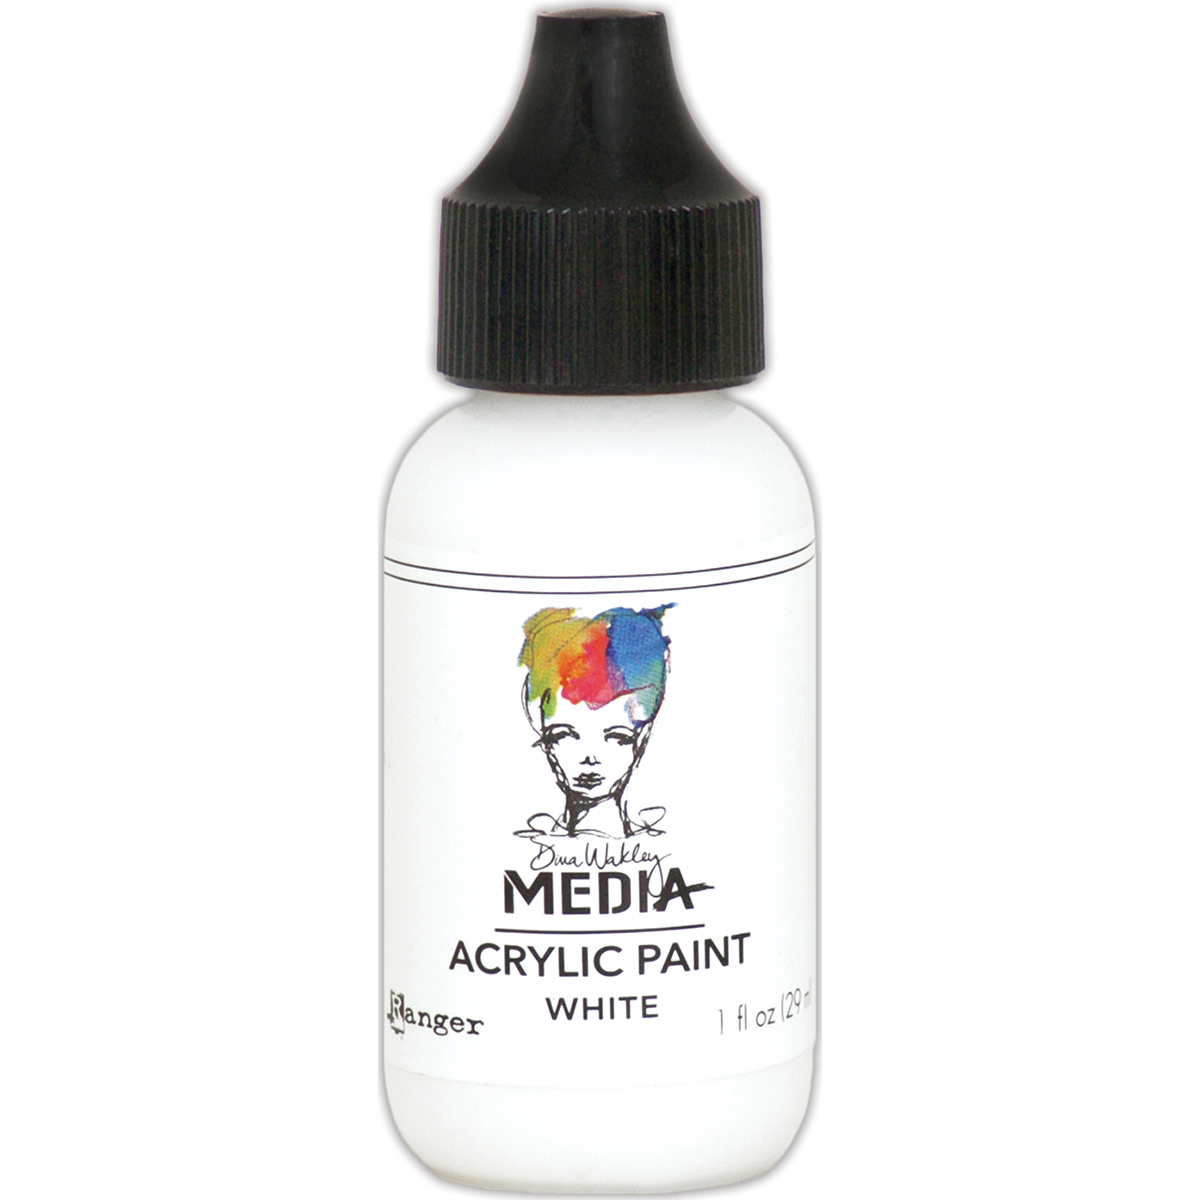 Dina Wakley Media Acrylic Paint White